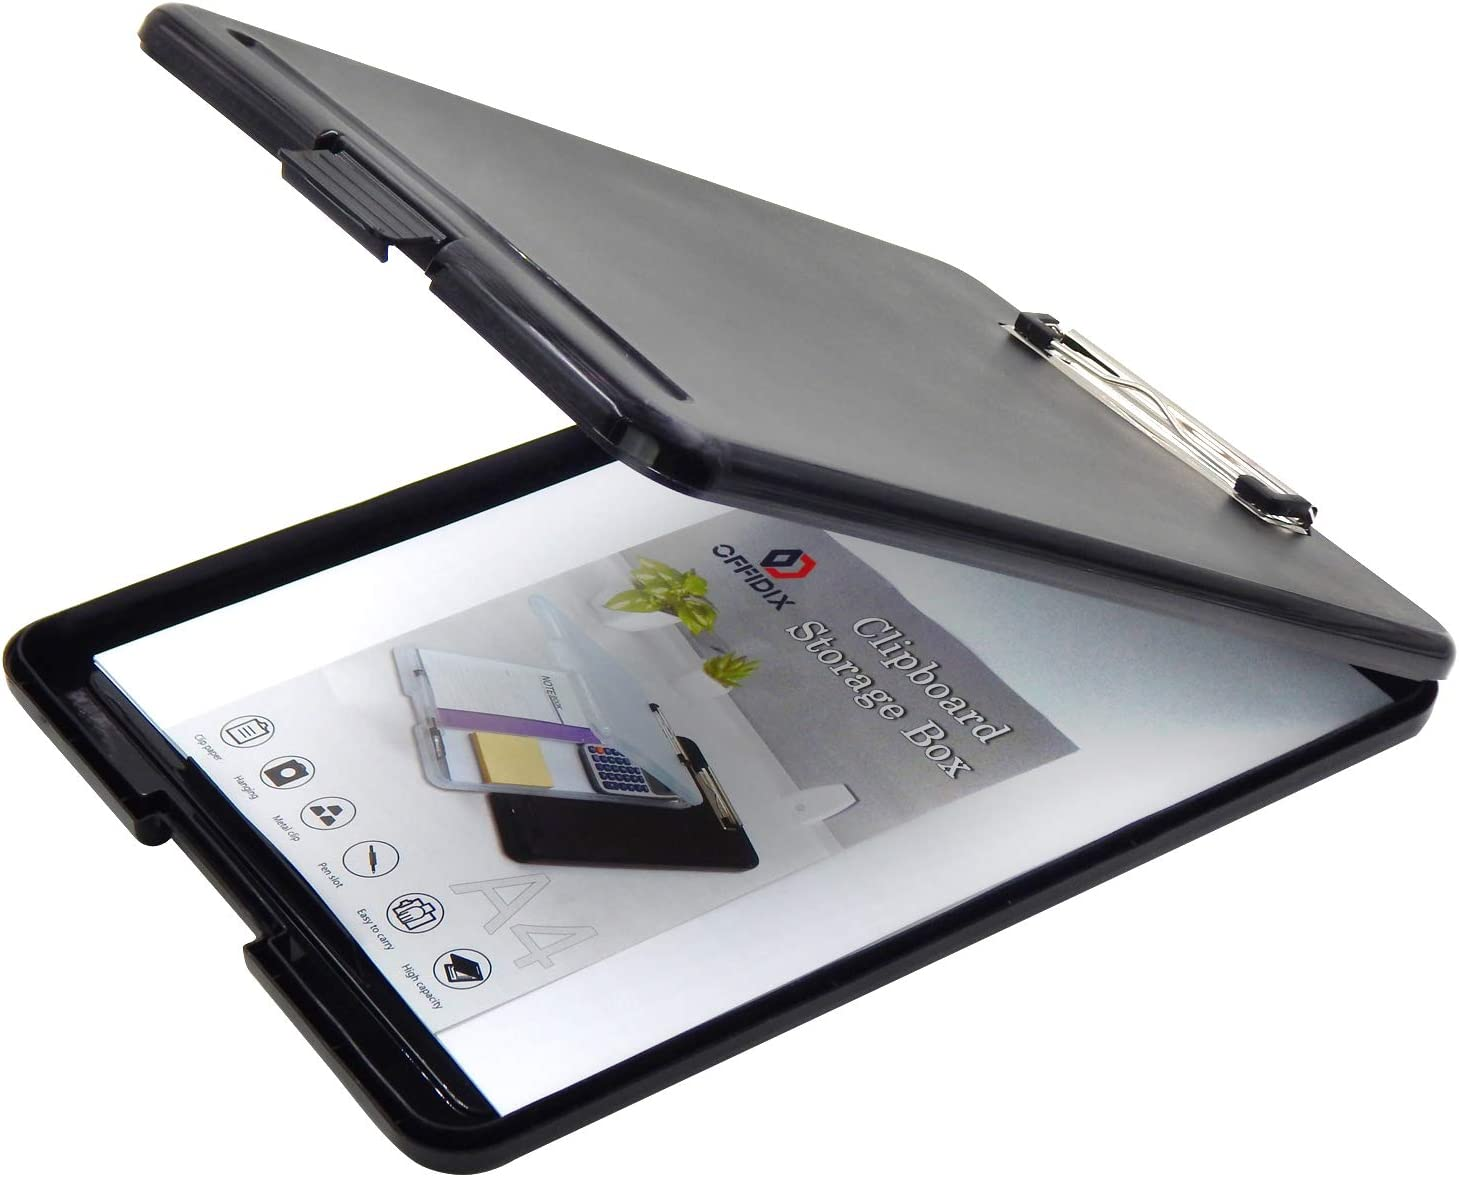 Best clipboard with calculator 2020